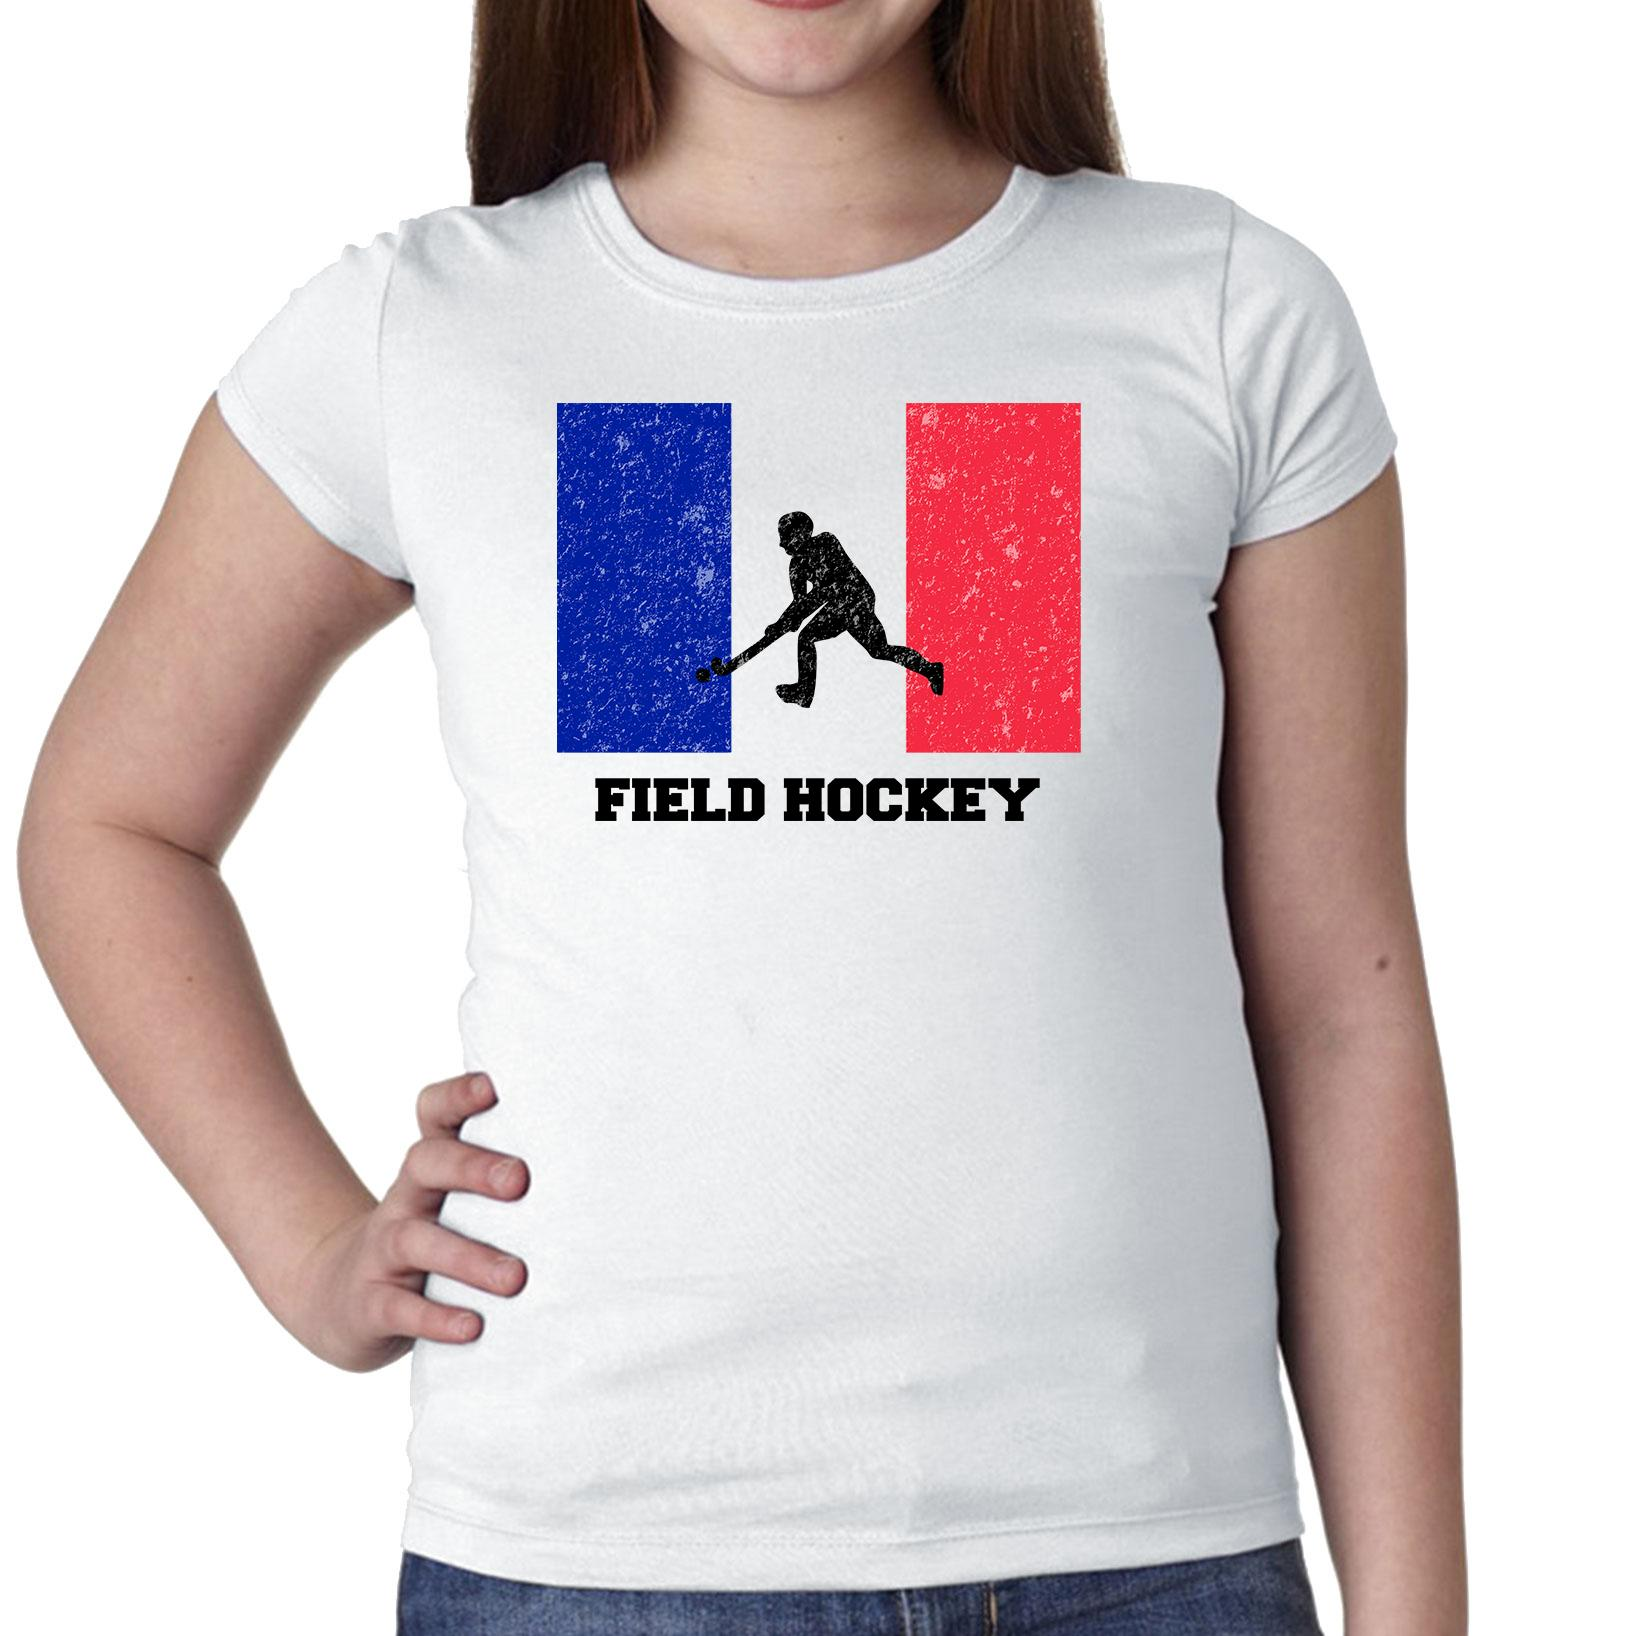 France Olympic Field Hockey Flag Silhouette Girl's Cotton Youth T-Shirt by Hollywood Thread